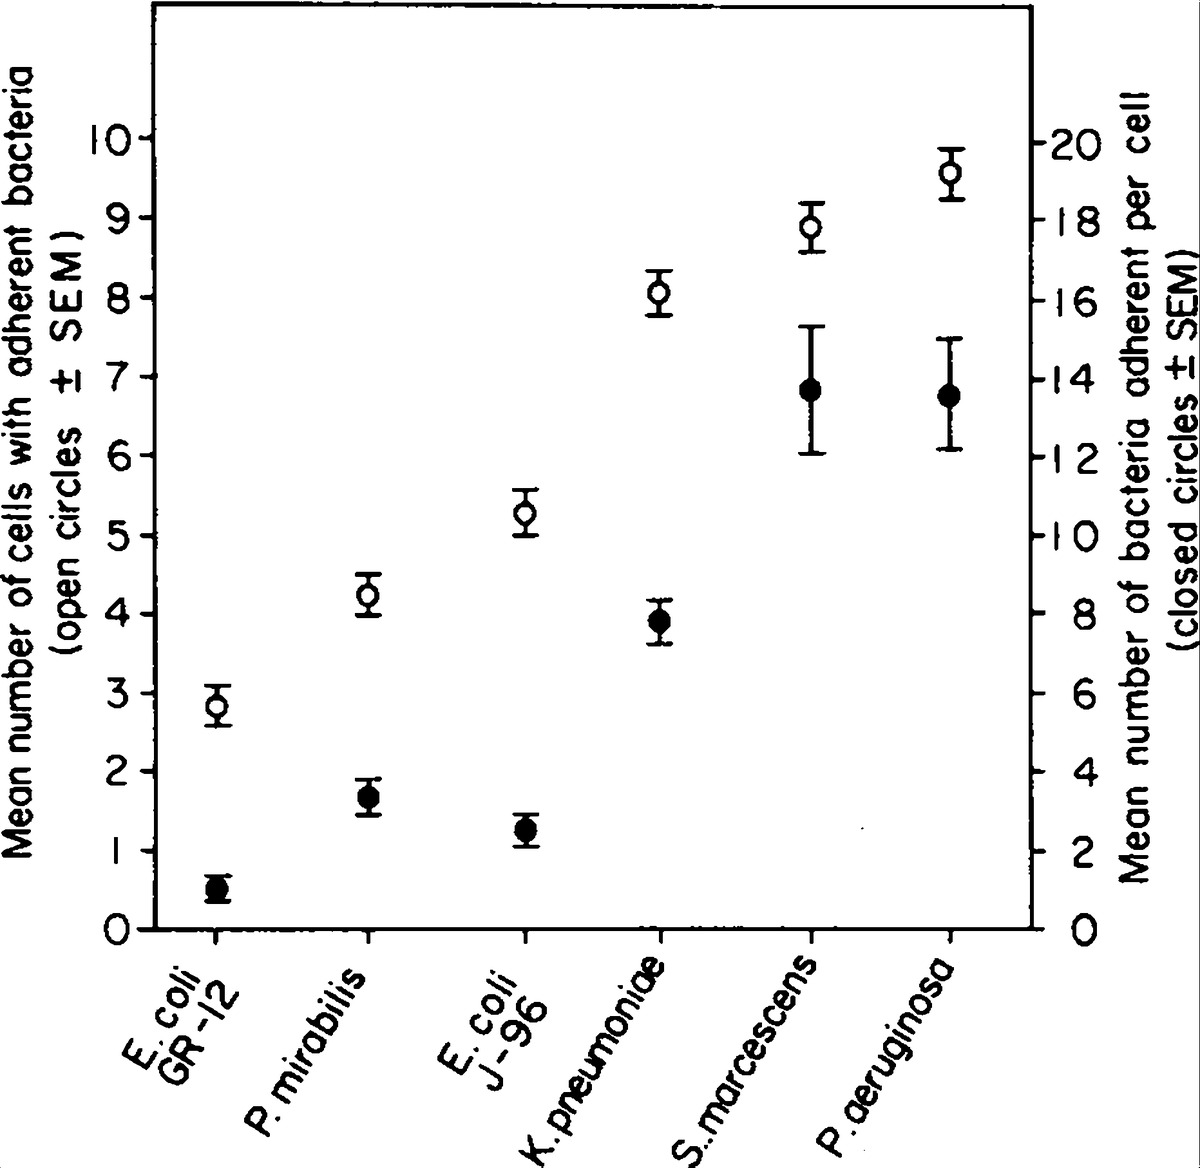 Bacterial Adherence To Bladder Uroepithelial Cells In Catheter Associated Urinary Tract